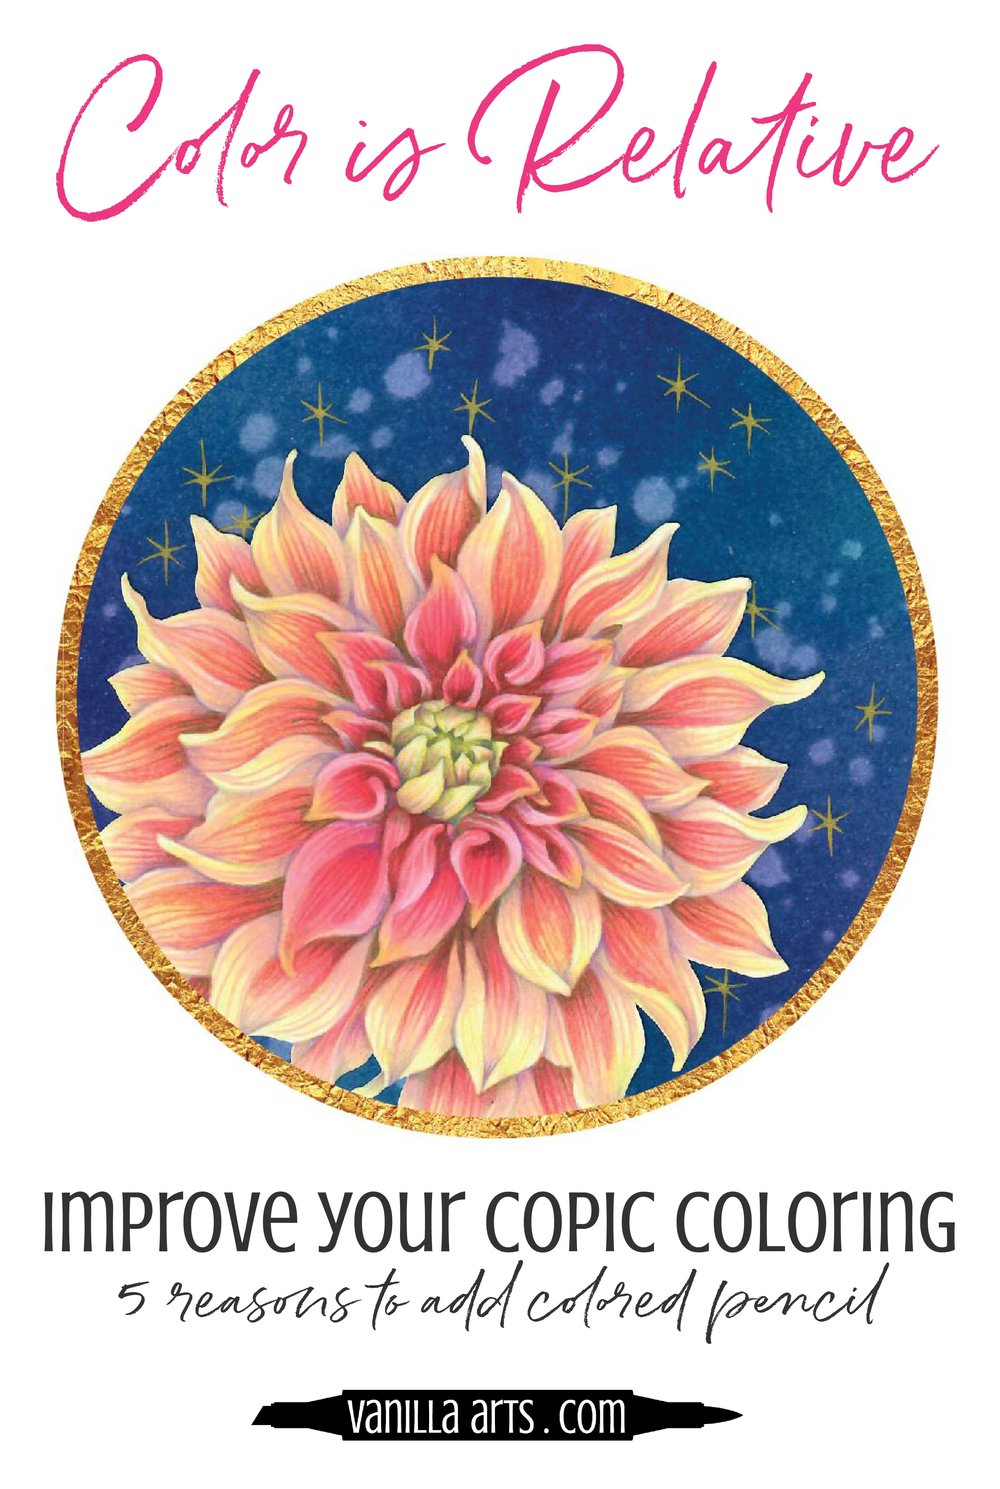 Copic Markers are amazing but they can't do everything. 5 Reasons to add colored pencil to your next marker project! | VanillaArts.com | #copic #coloredpencil #coloringtips #adultcoloring #howtocolor